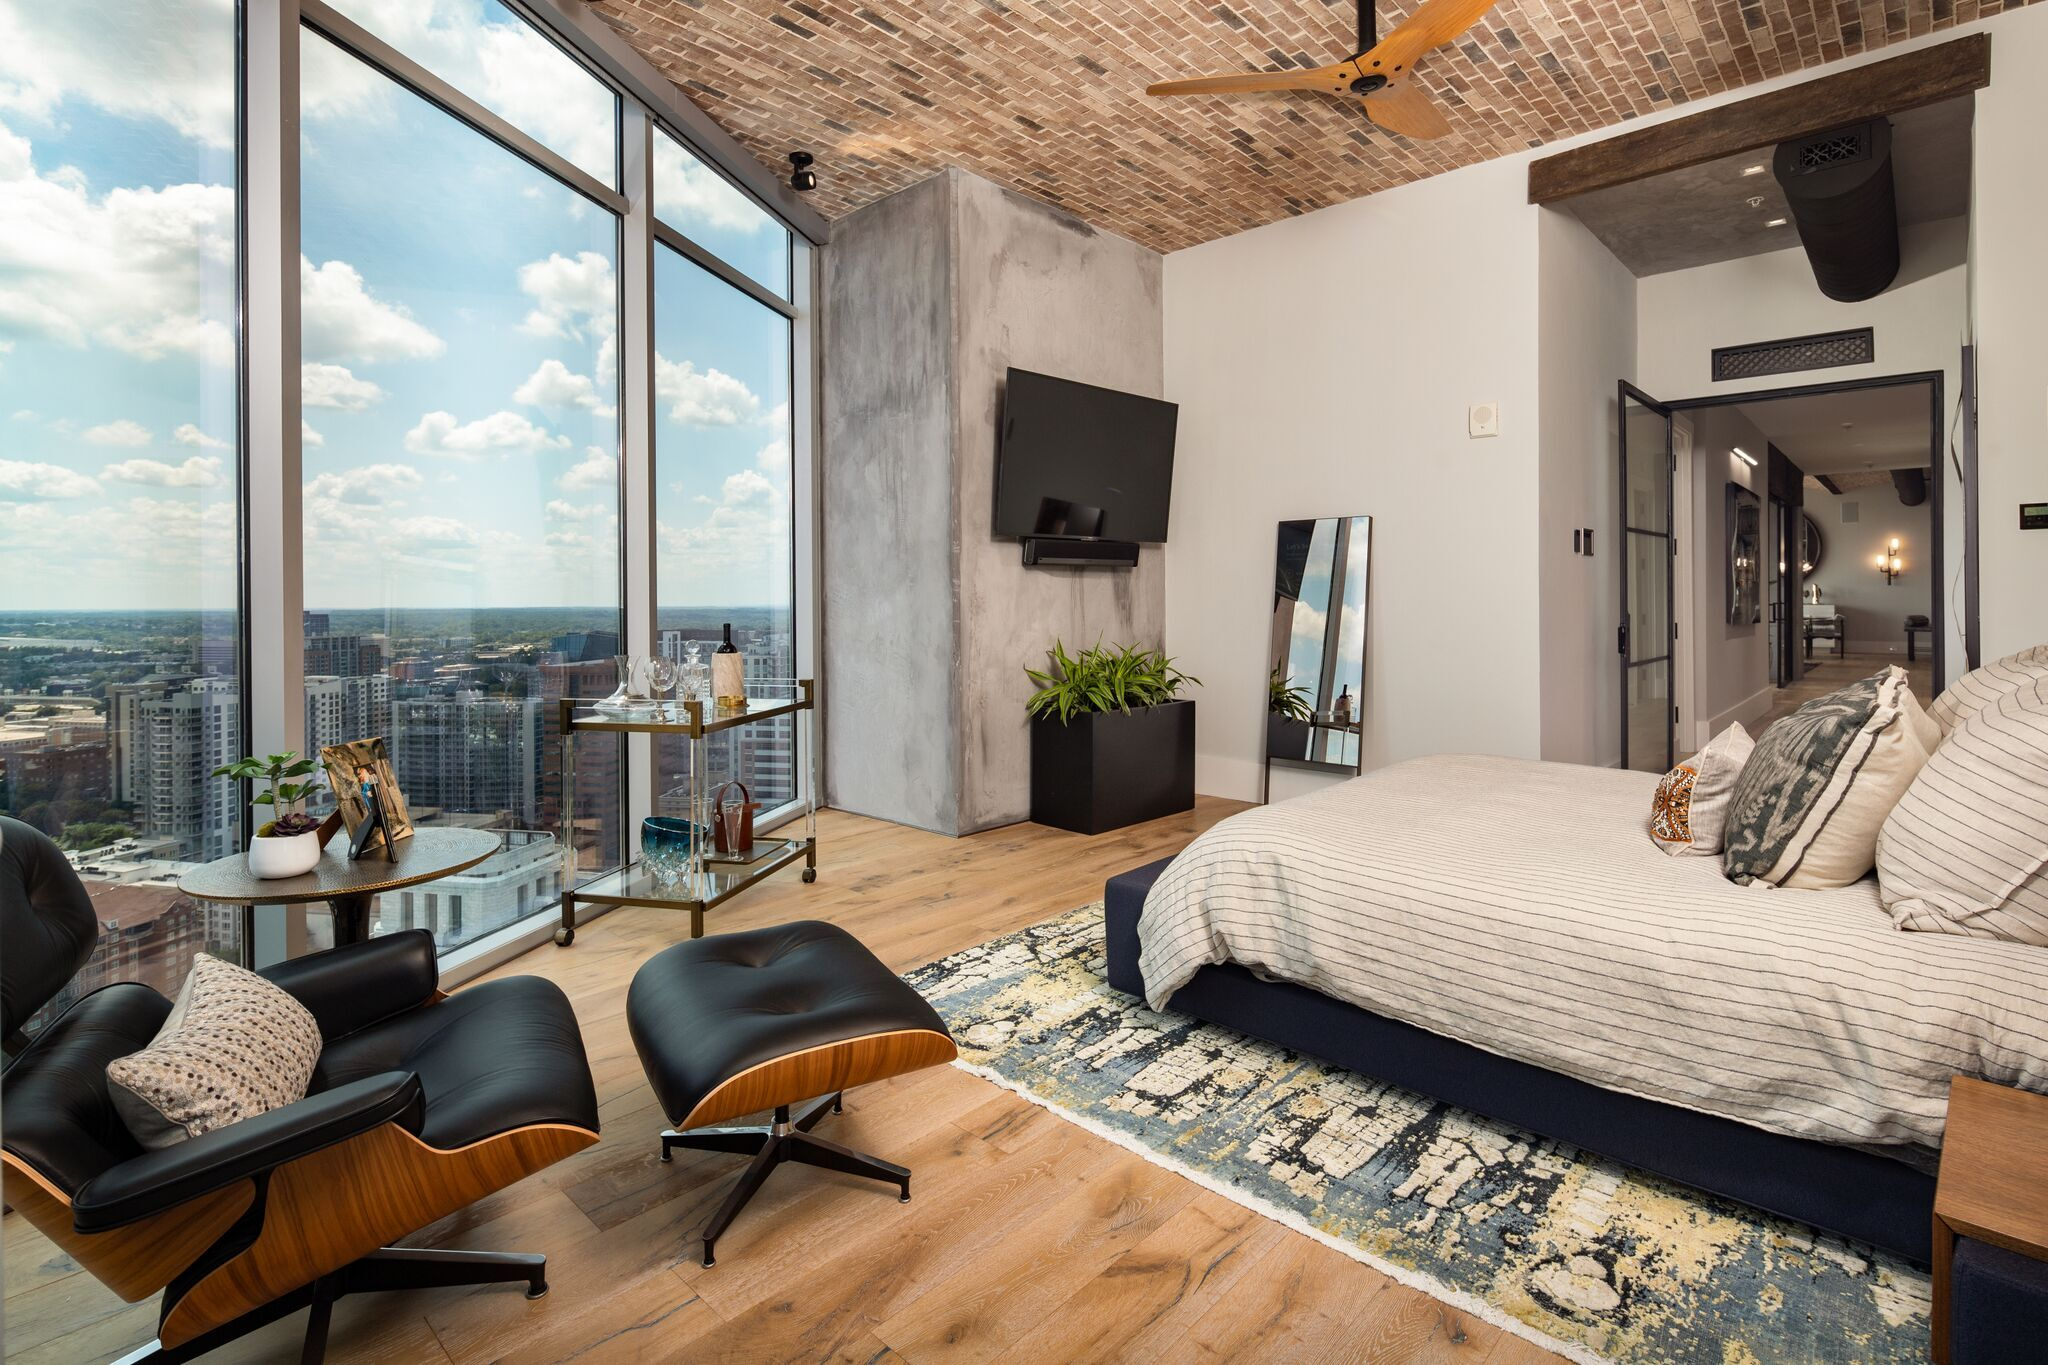 Inside the dramatic renovation of a $3M Midtown penthouse atop Loews Atlanta